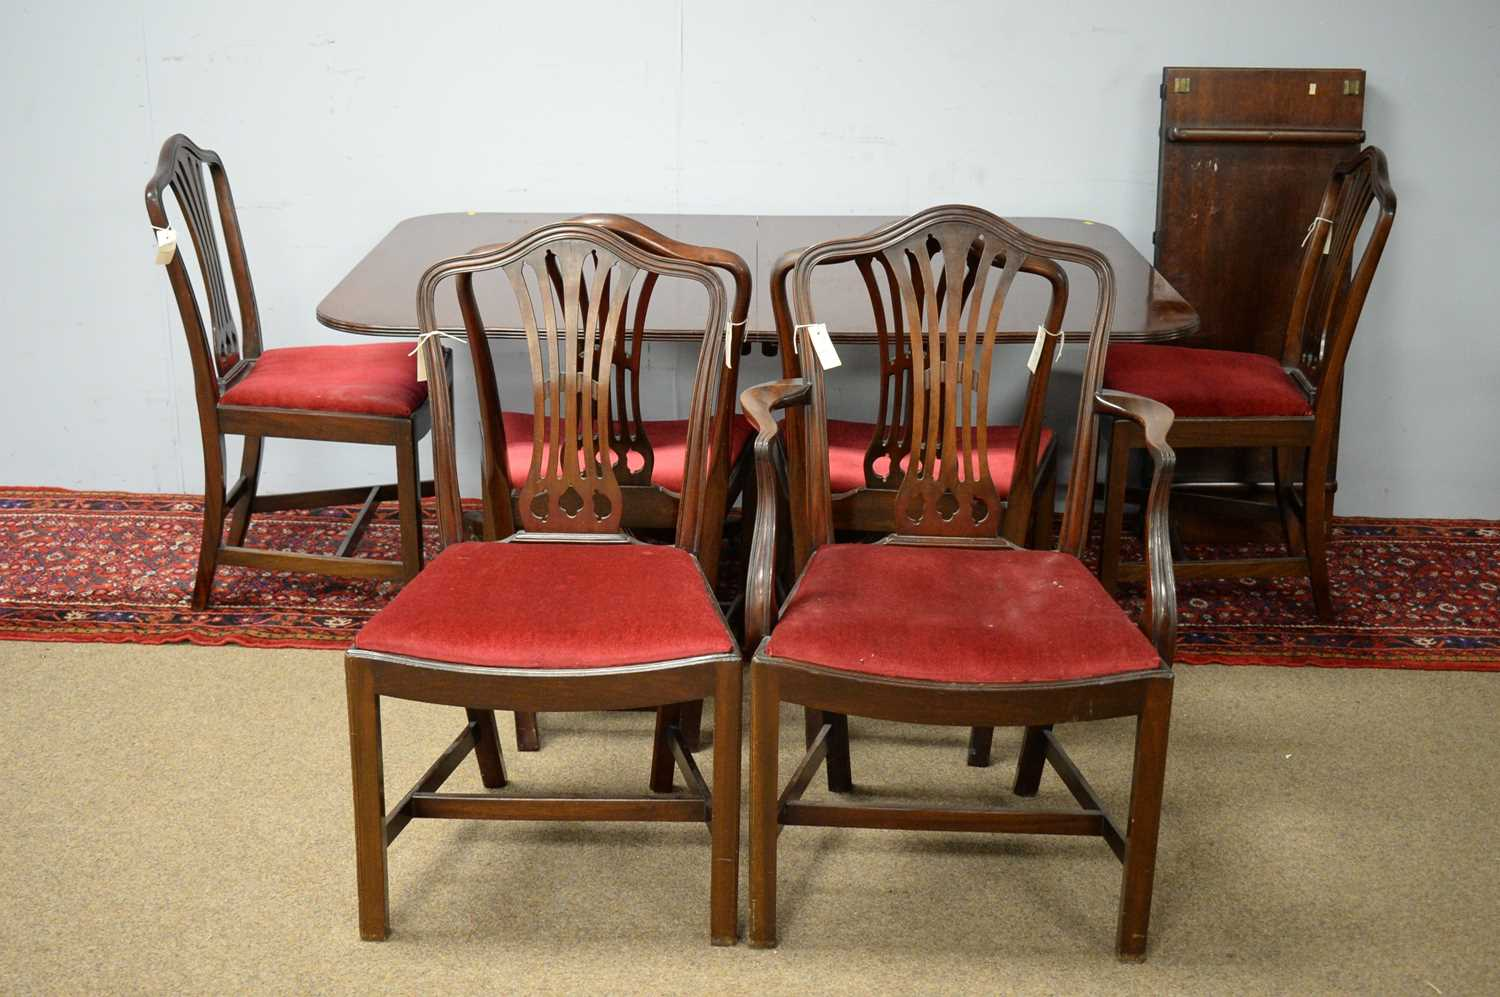 20th C George III style dining room suite. - Image 2 of 3